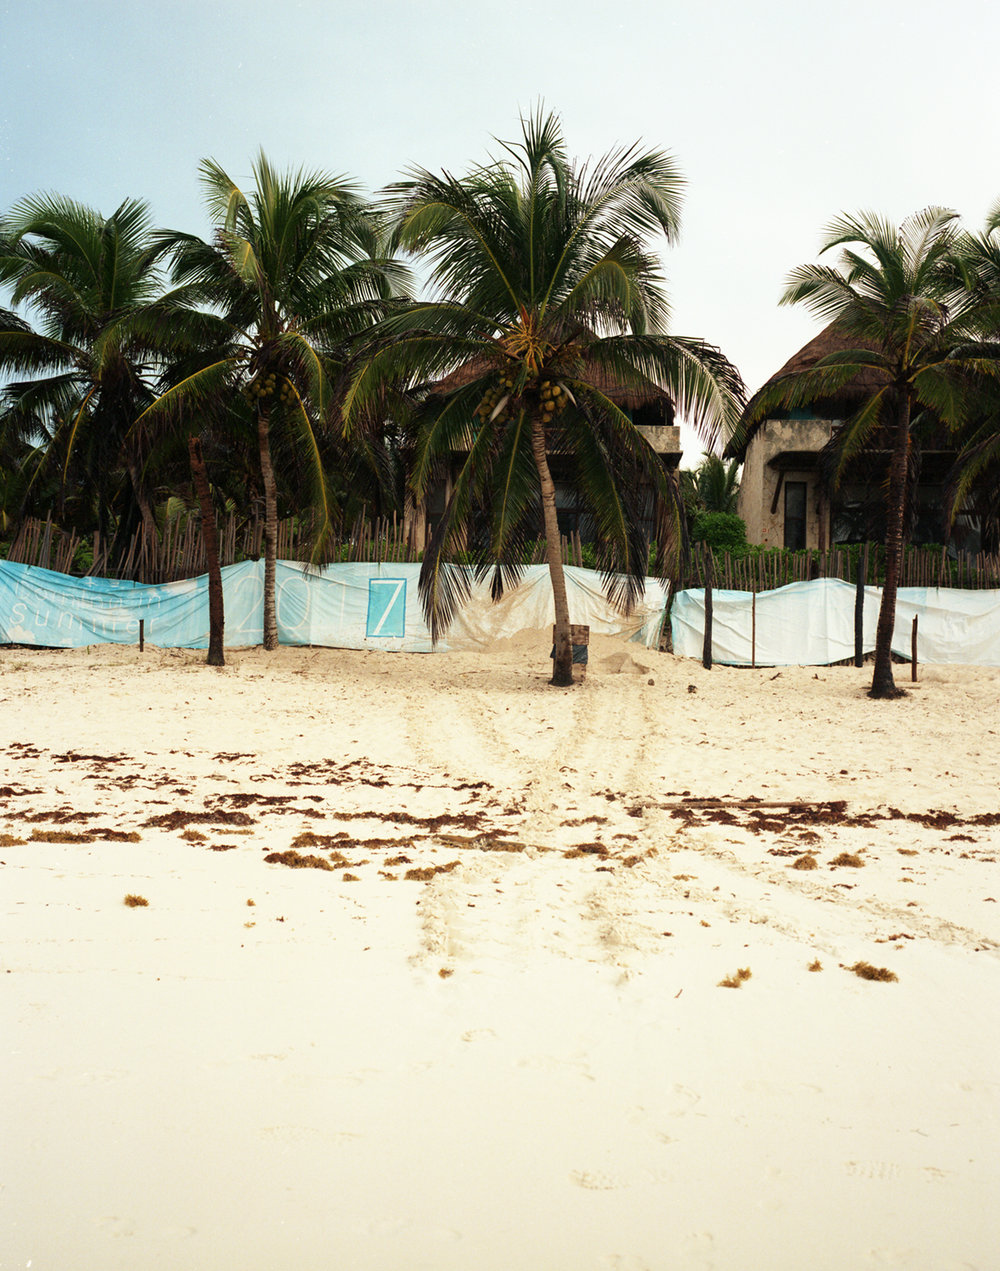 Turtle tracks blocked by development barriers. Tulum, Mexico.